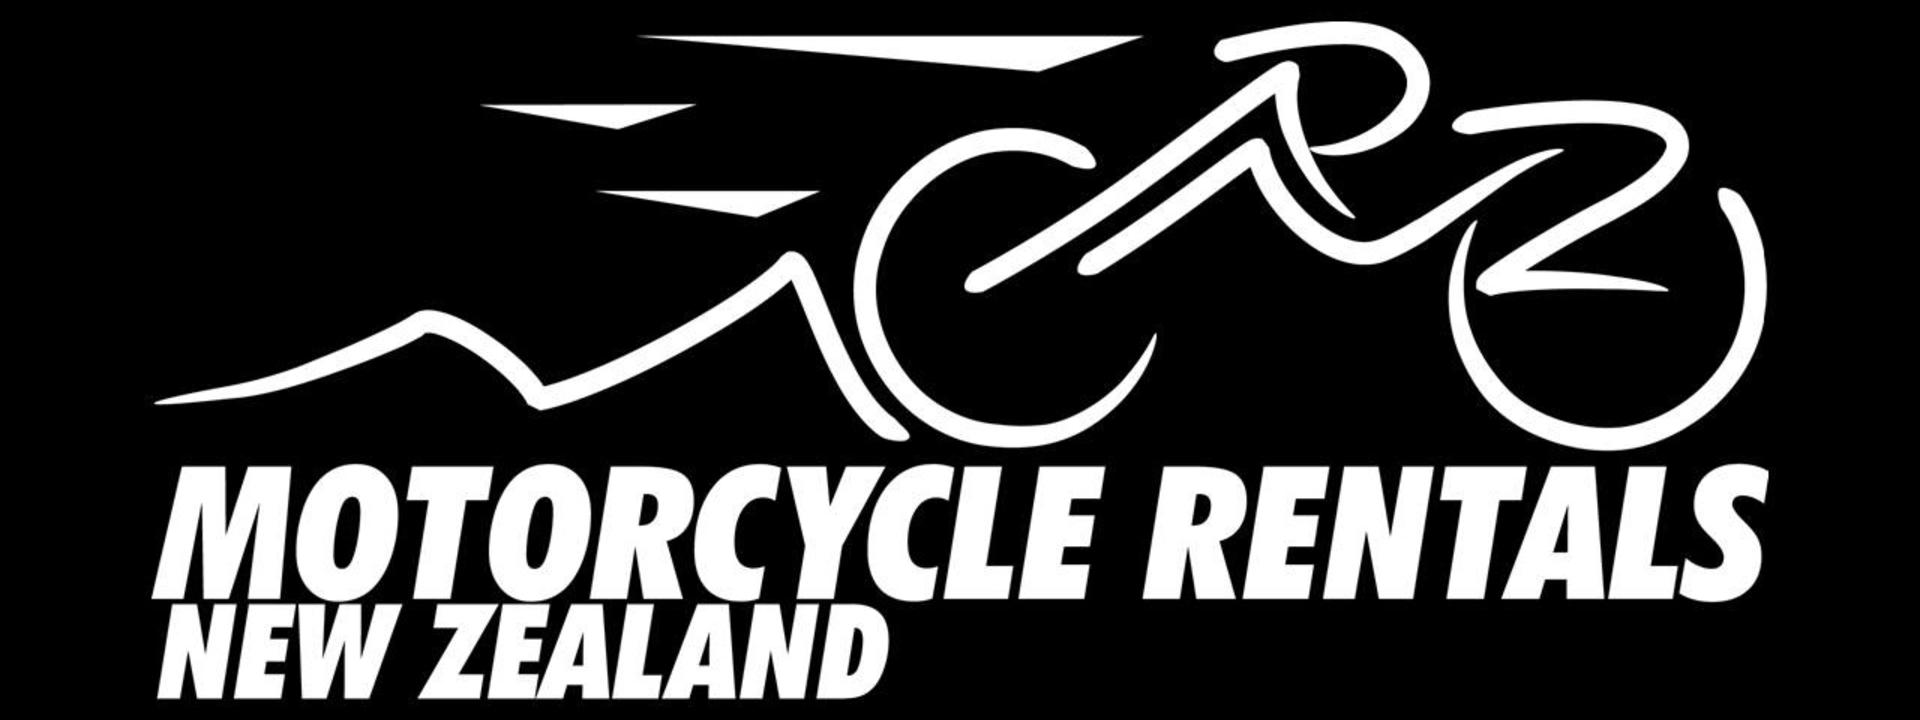 Logo: Motorcycle Rentals New Zealand Limited